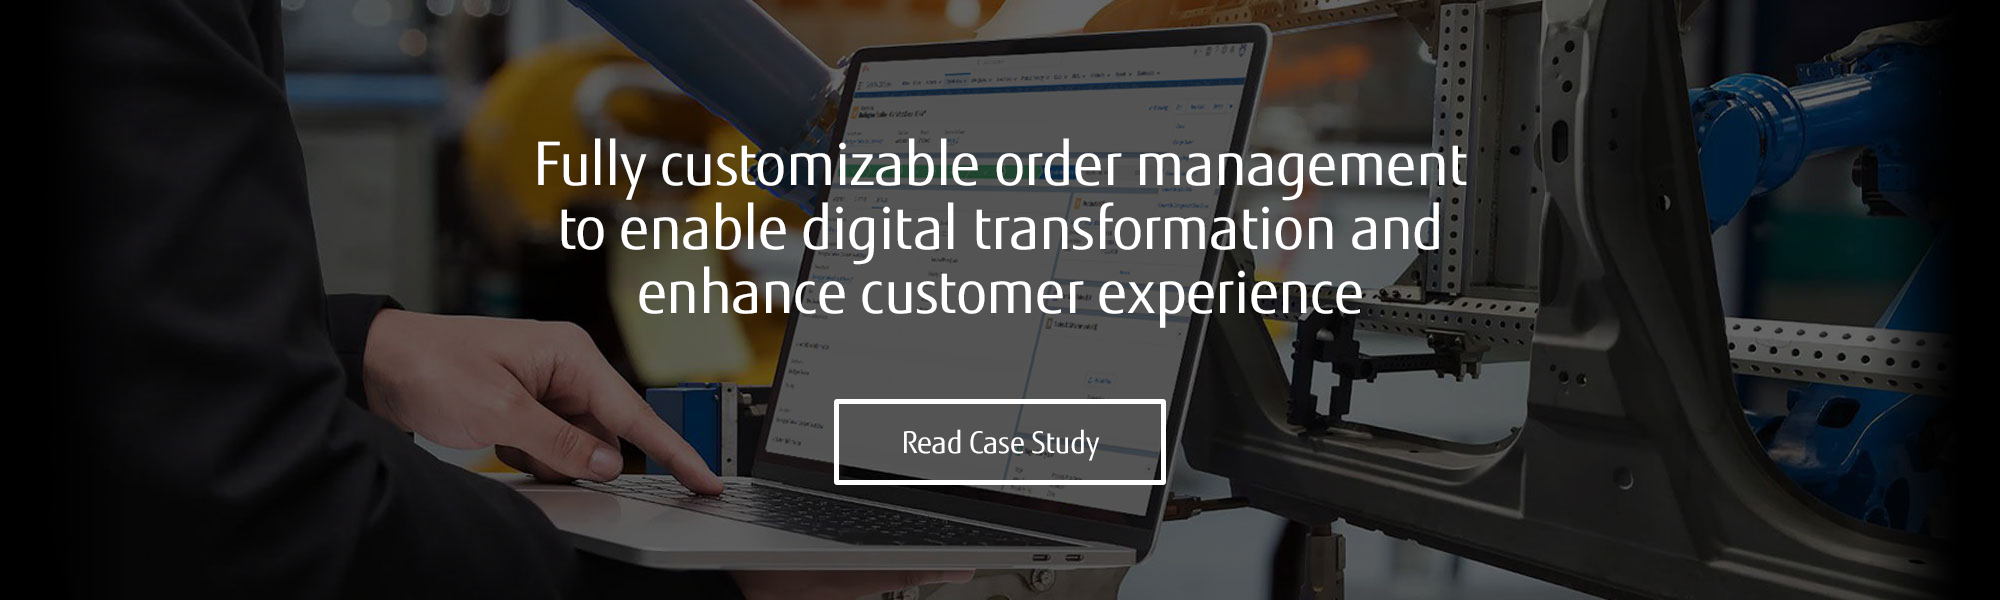 Fully customizable order management to enable digital transformation and enhance customer experience. Read Case Study.